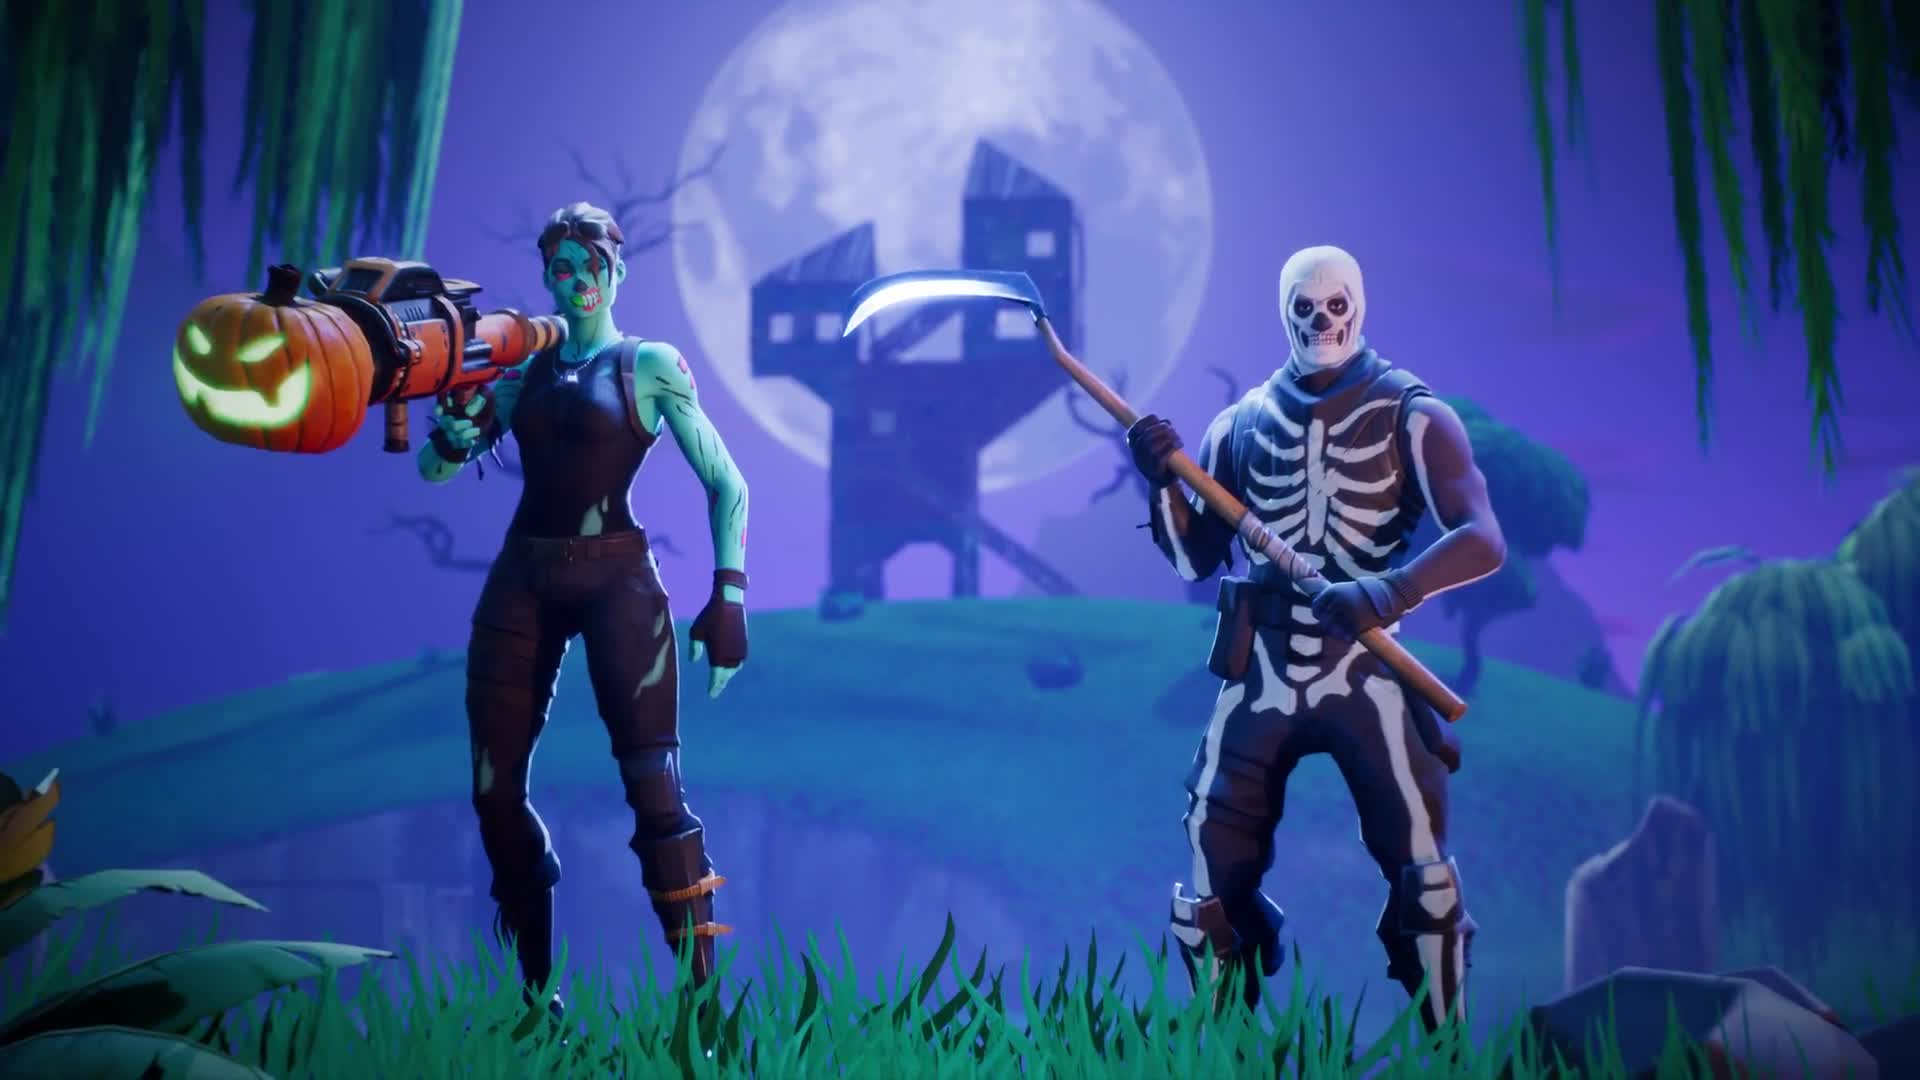 All Christmas Skins Fortnite.Fight All Fortnite Christmas Skins Wallpapers Top Free